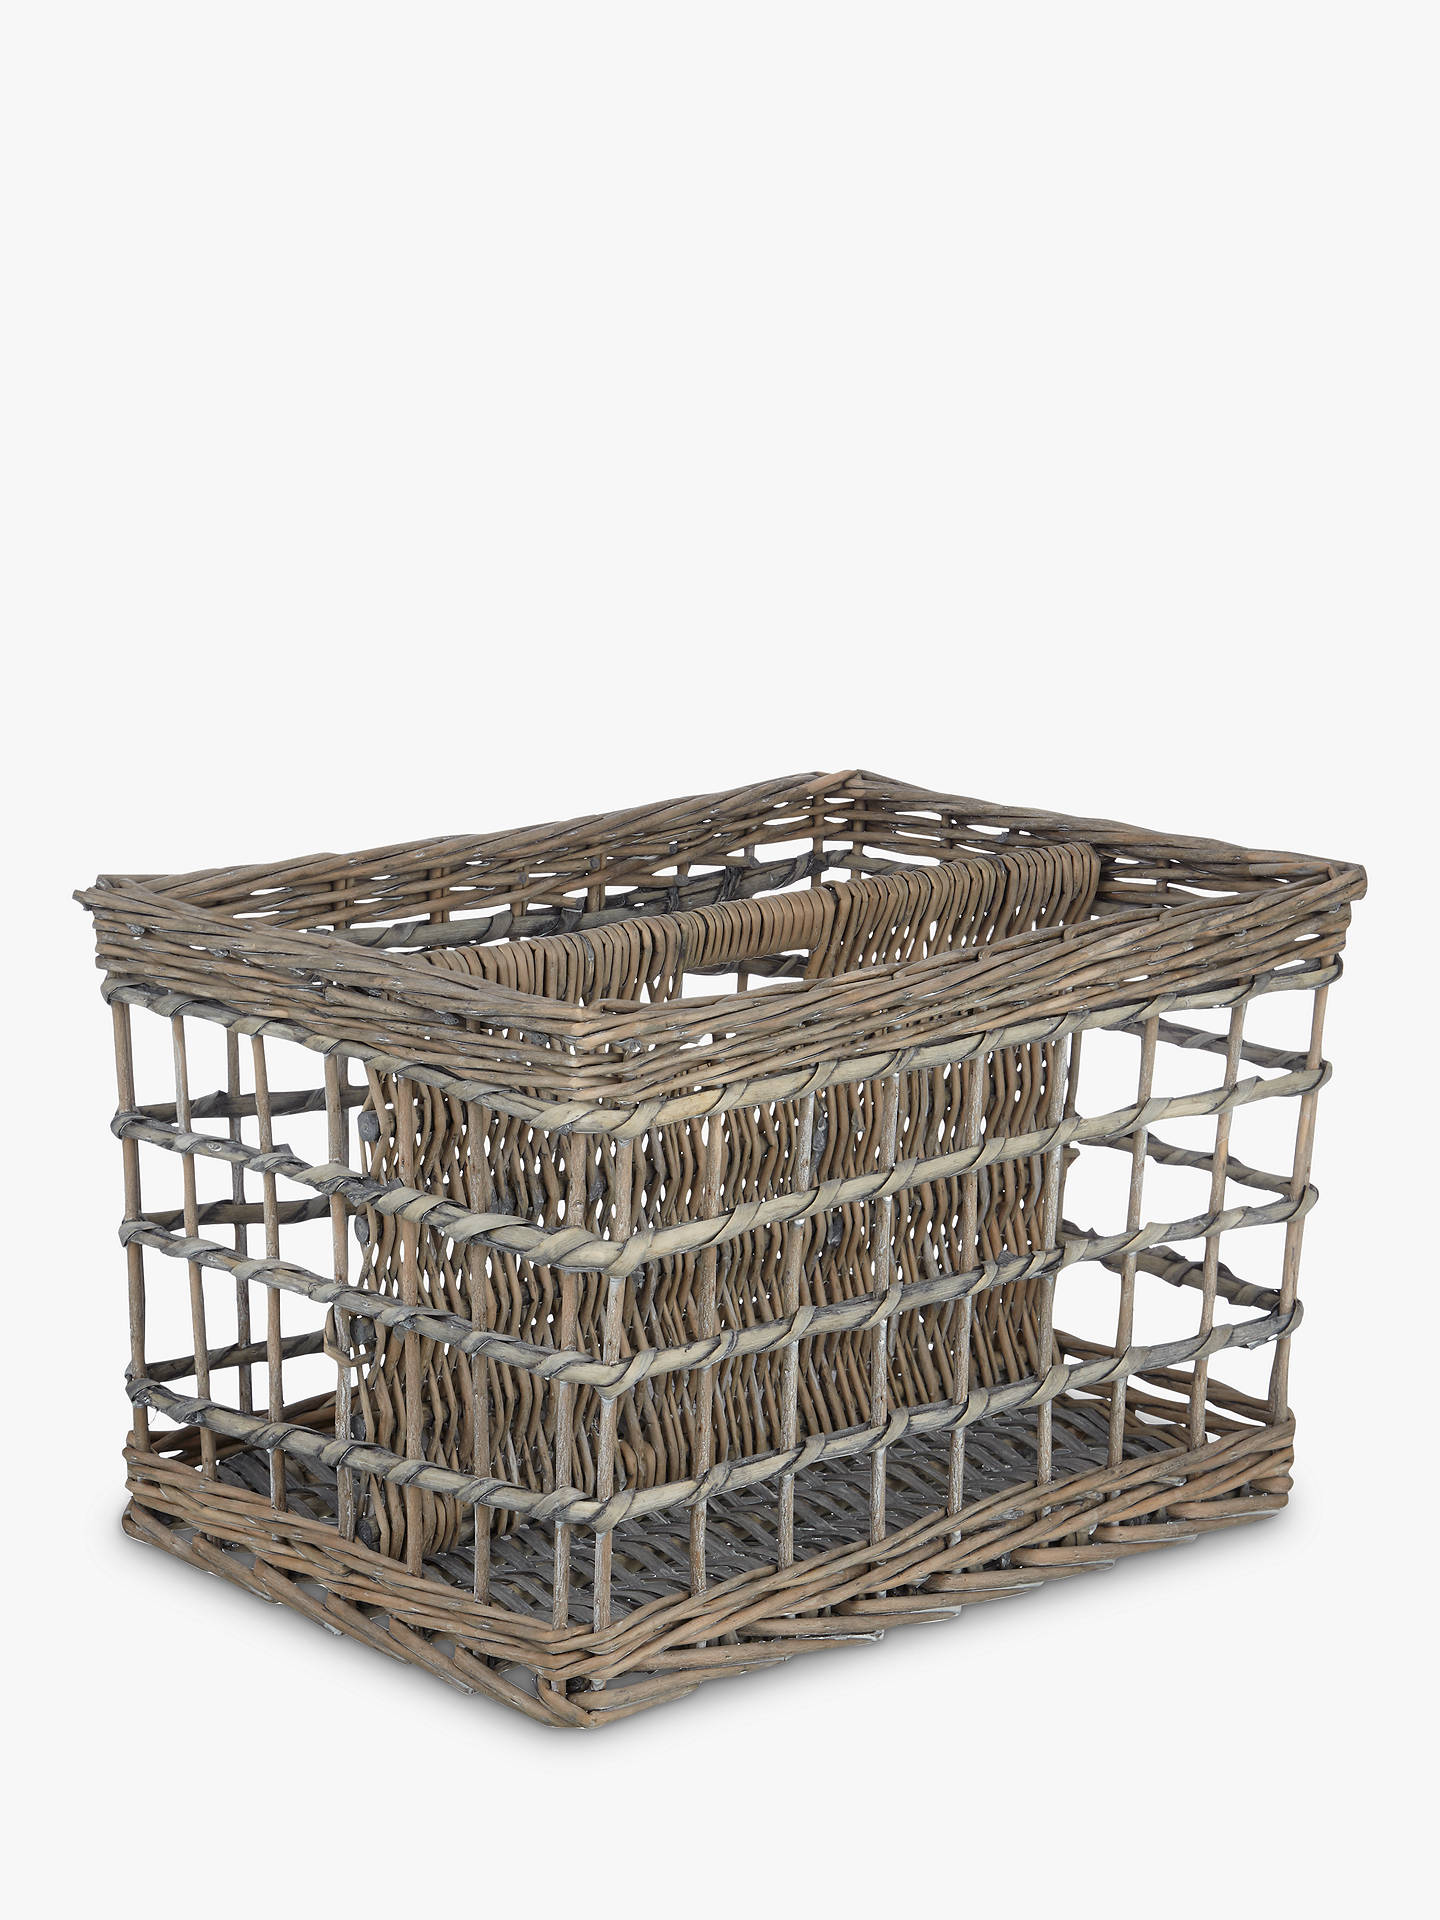 BuyJohn Lewis & Partners Grey Wicker Magazine Rack Online at johnlewis.com